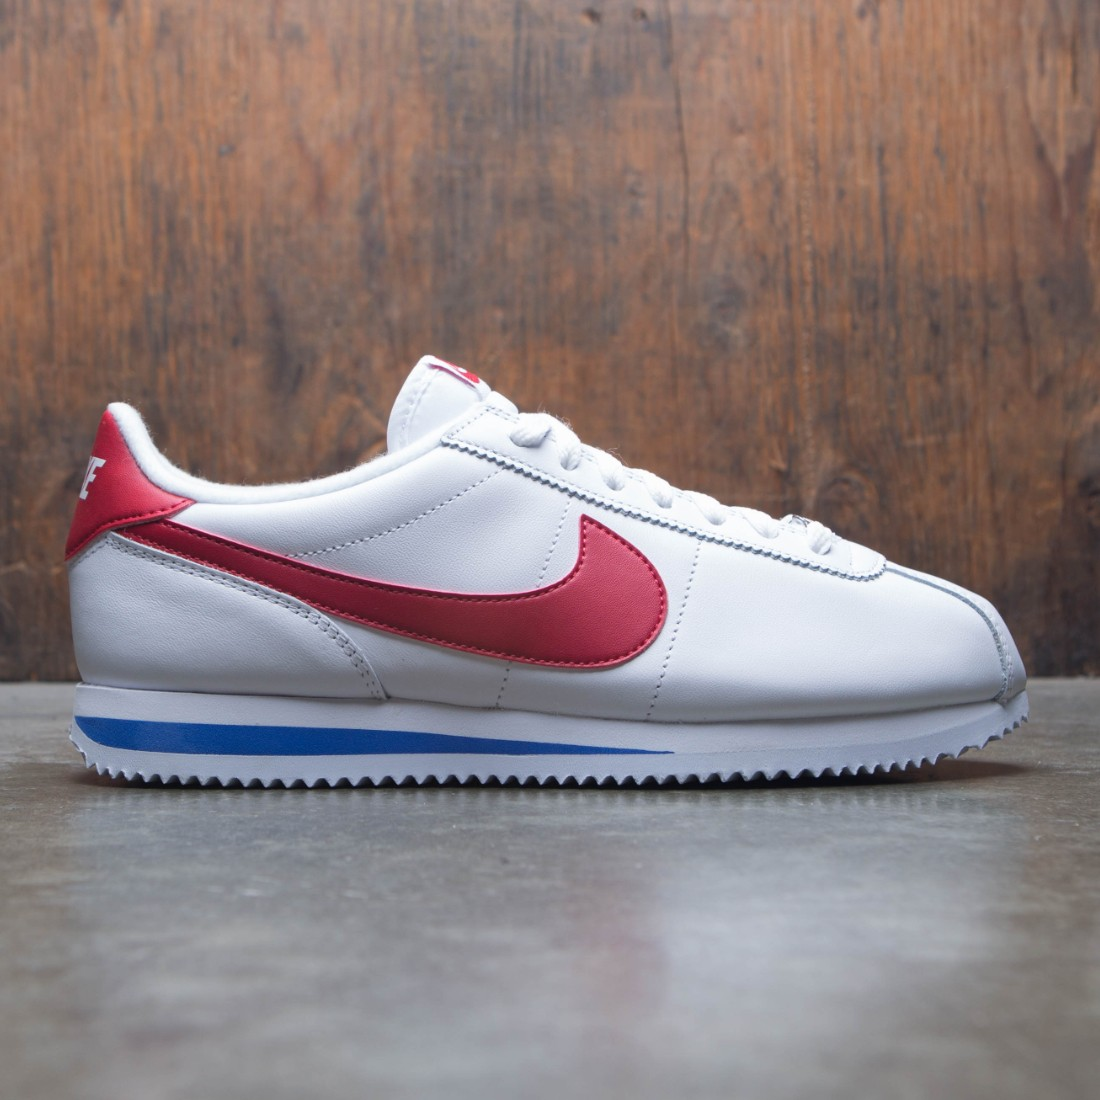 5c7b94e9cbf4 nike men cortez basic leather og white varsity red varsity royal